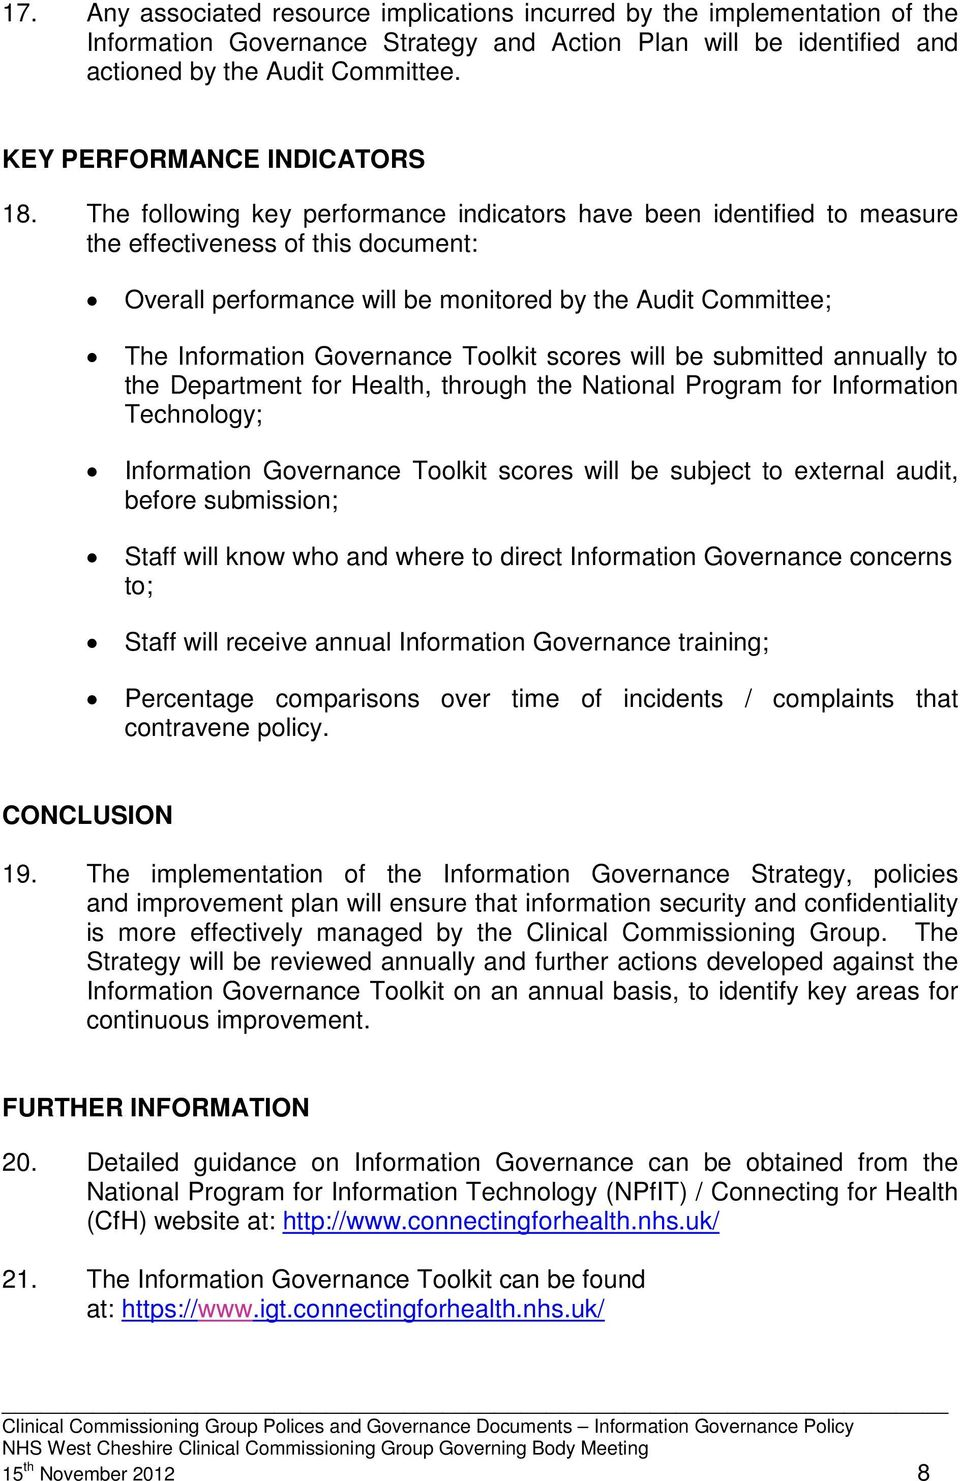 The following key performance indicators have been identified to measure the effectiveness of this document: Overall performance will be monitored by the Audit Committee; The Information Governance